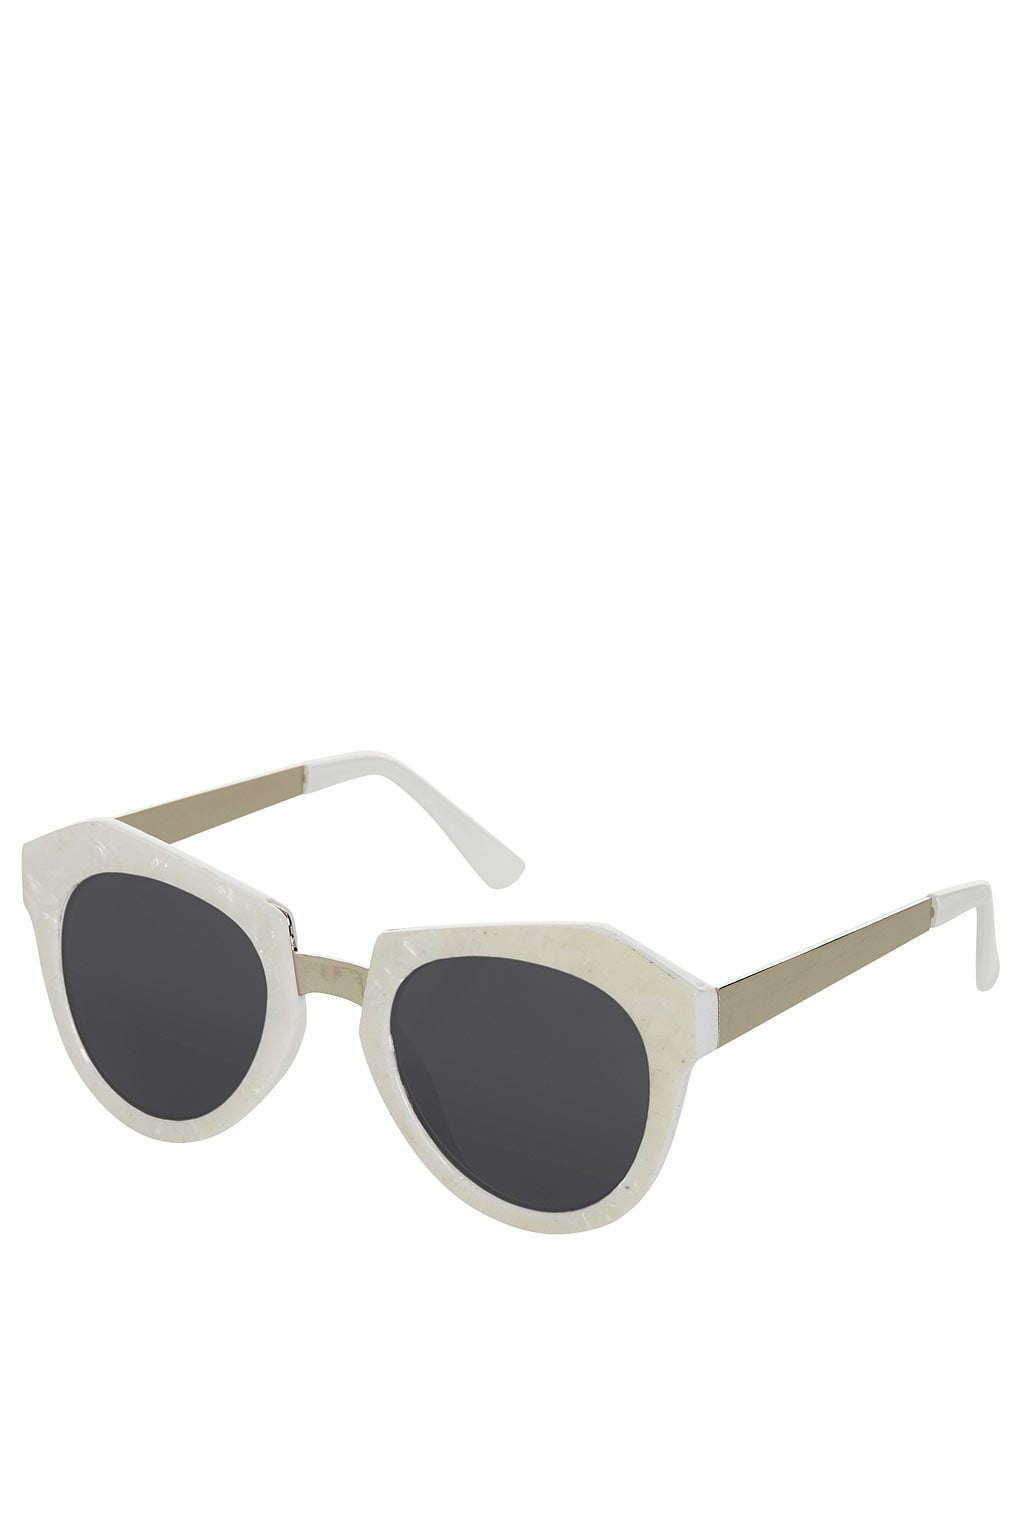 Bright white takes Topshop's frames ($32) up a notch.